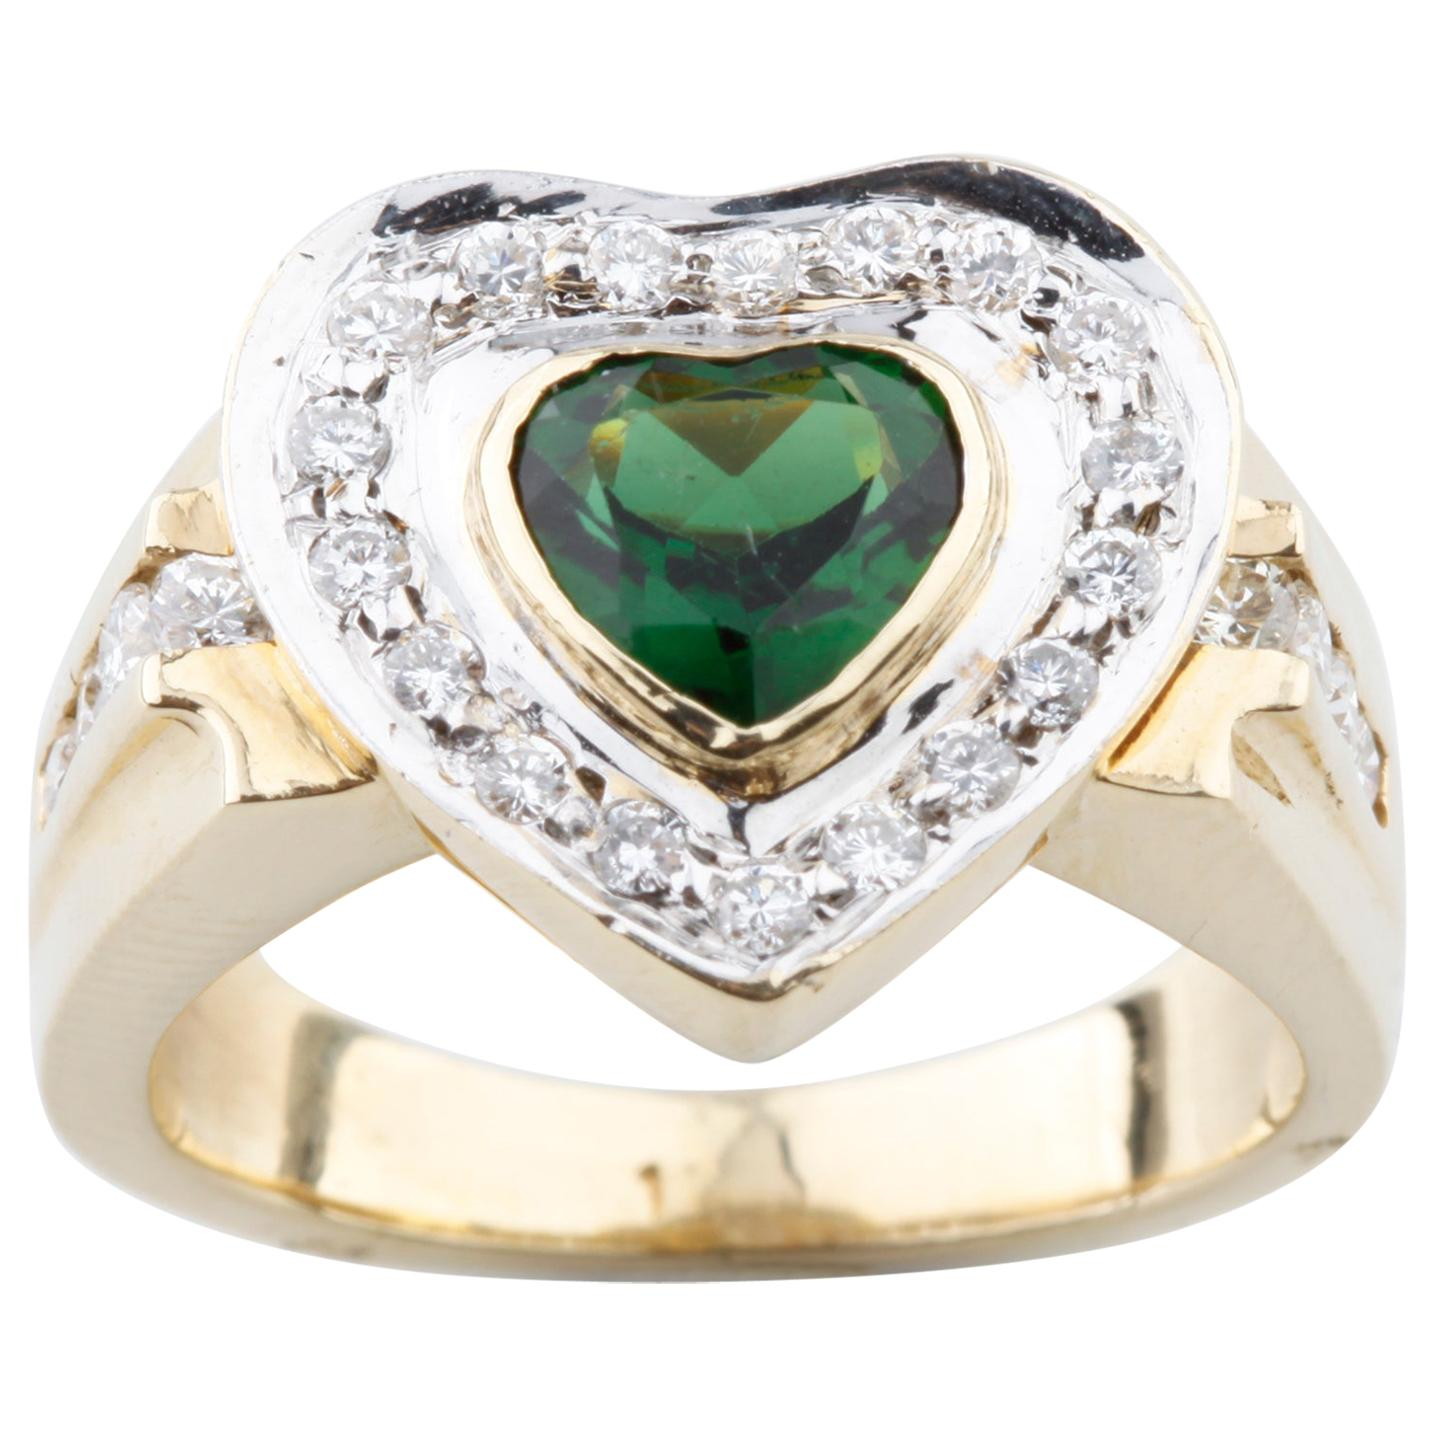 0.30 Carat Green Tourmaline Solitaire Ring with Diamond Accents in Yellow Gold